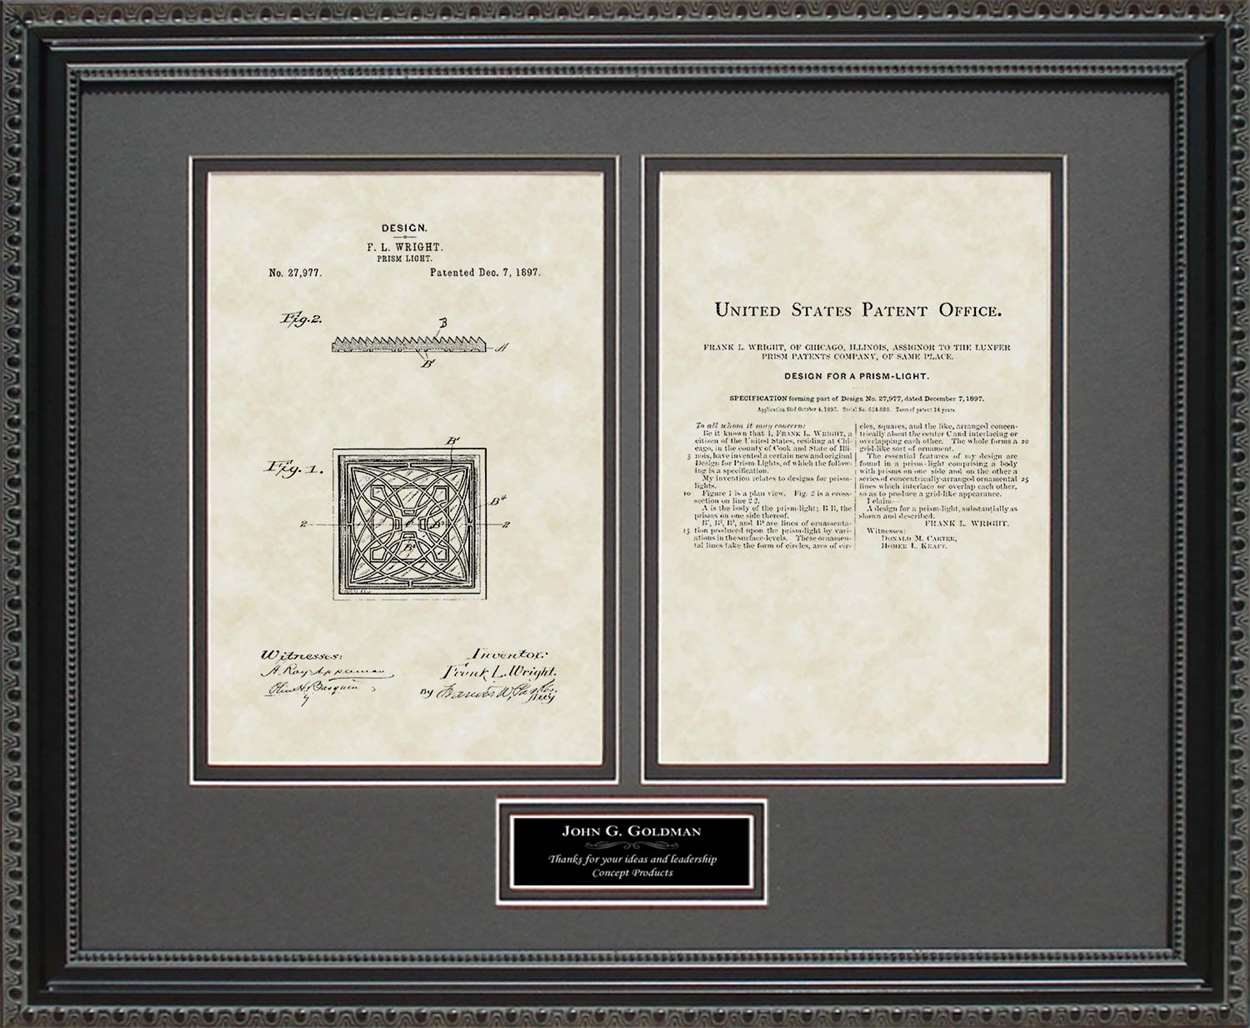 Personalized Prism Light Patent, Art & Copy, Frank Lloyd Wright, 1897